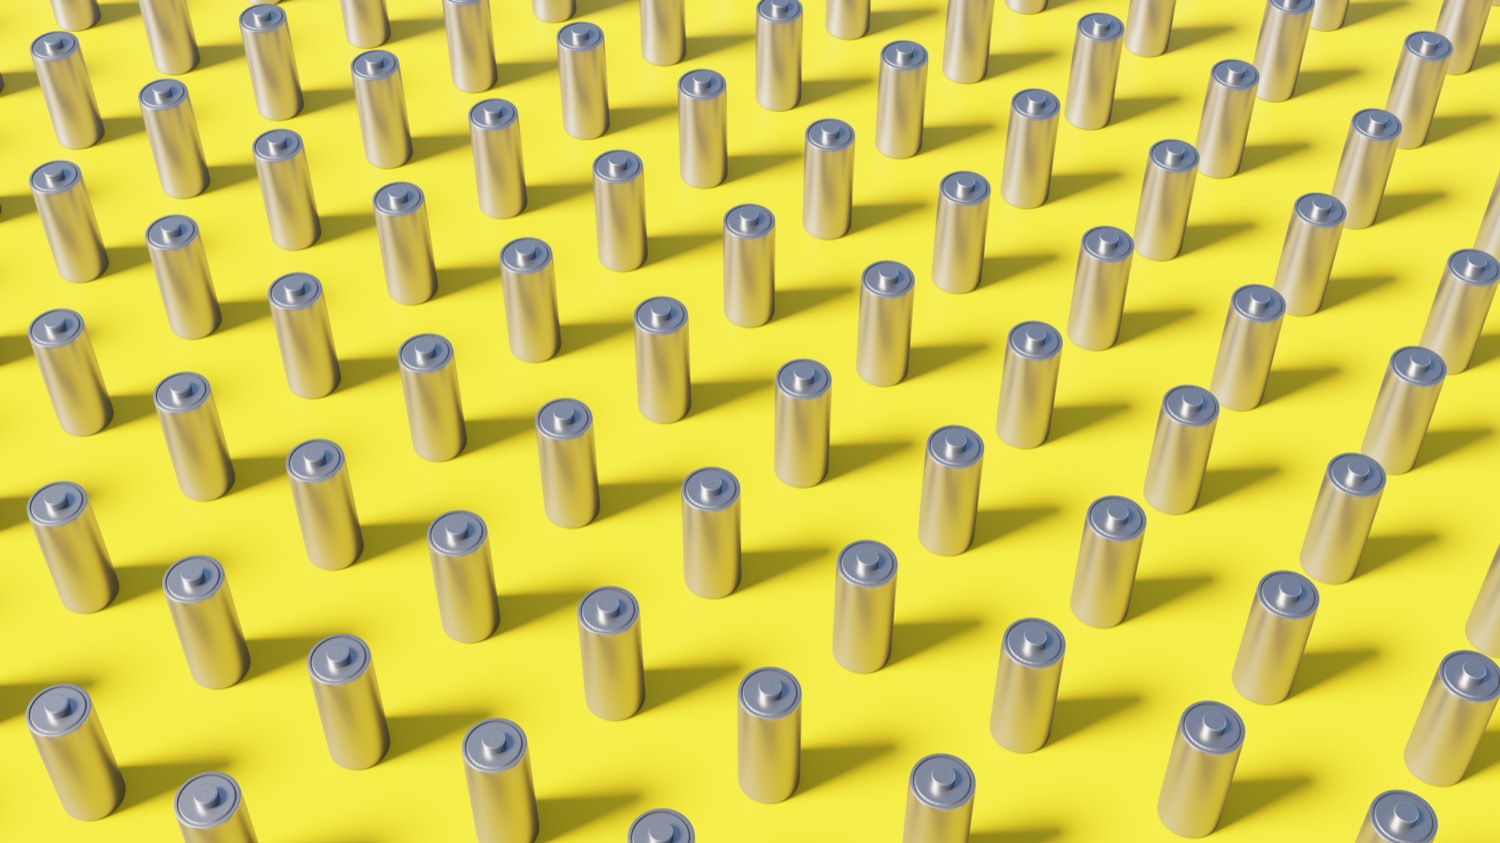 dozens of rows of AA batteries on a yellow background